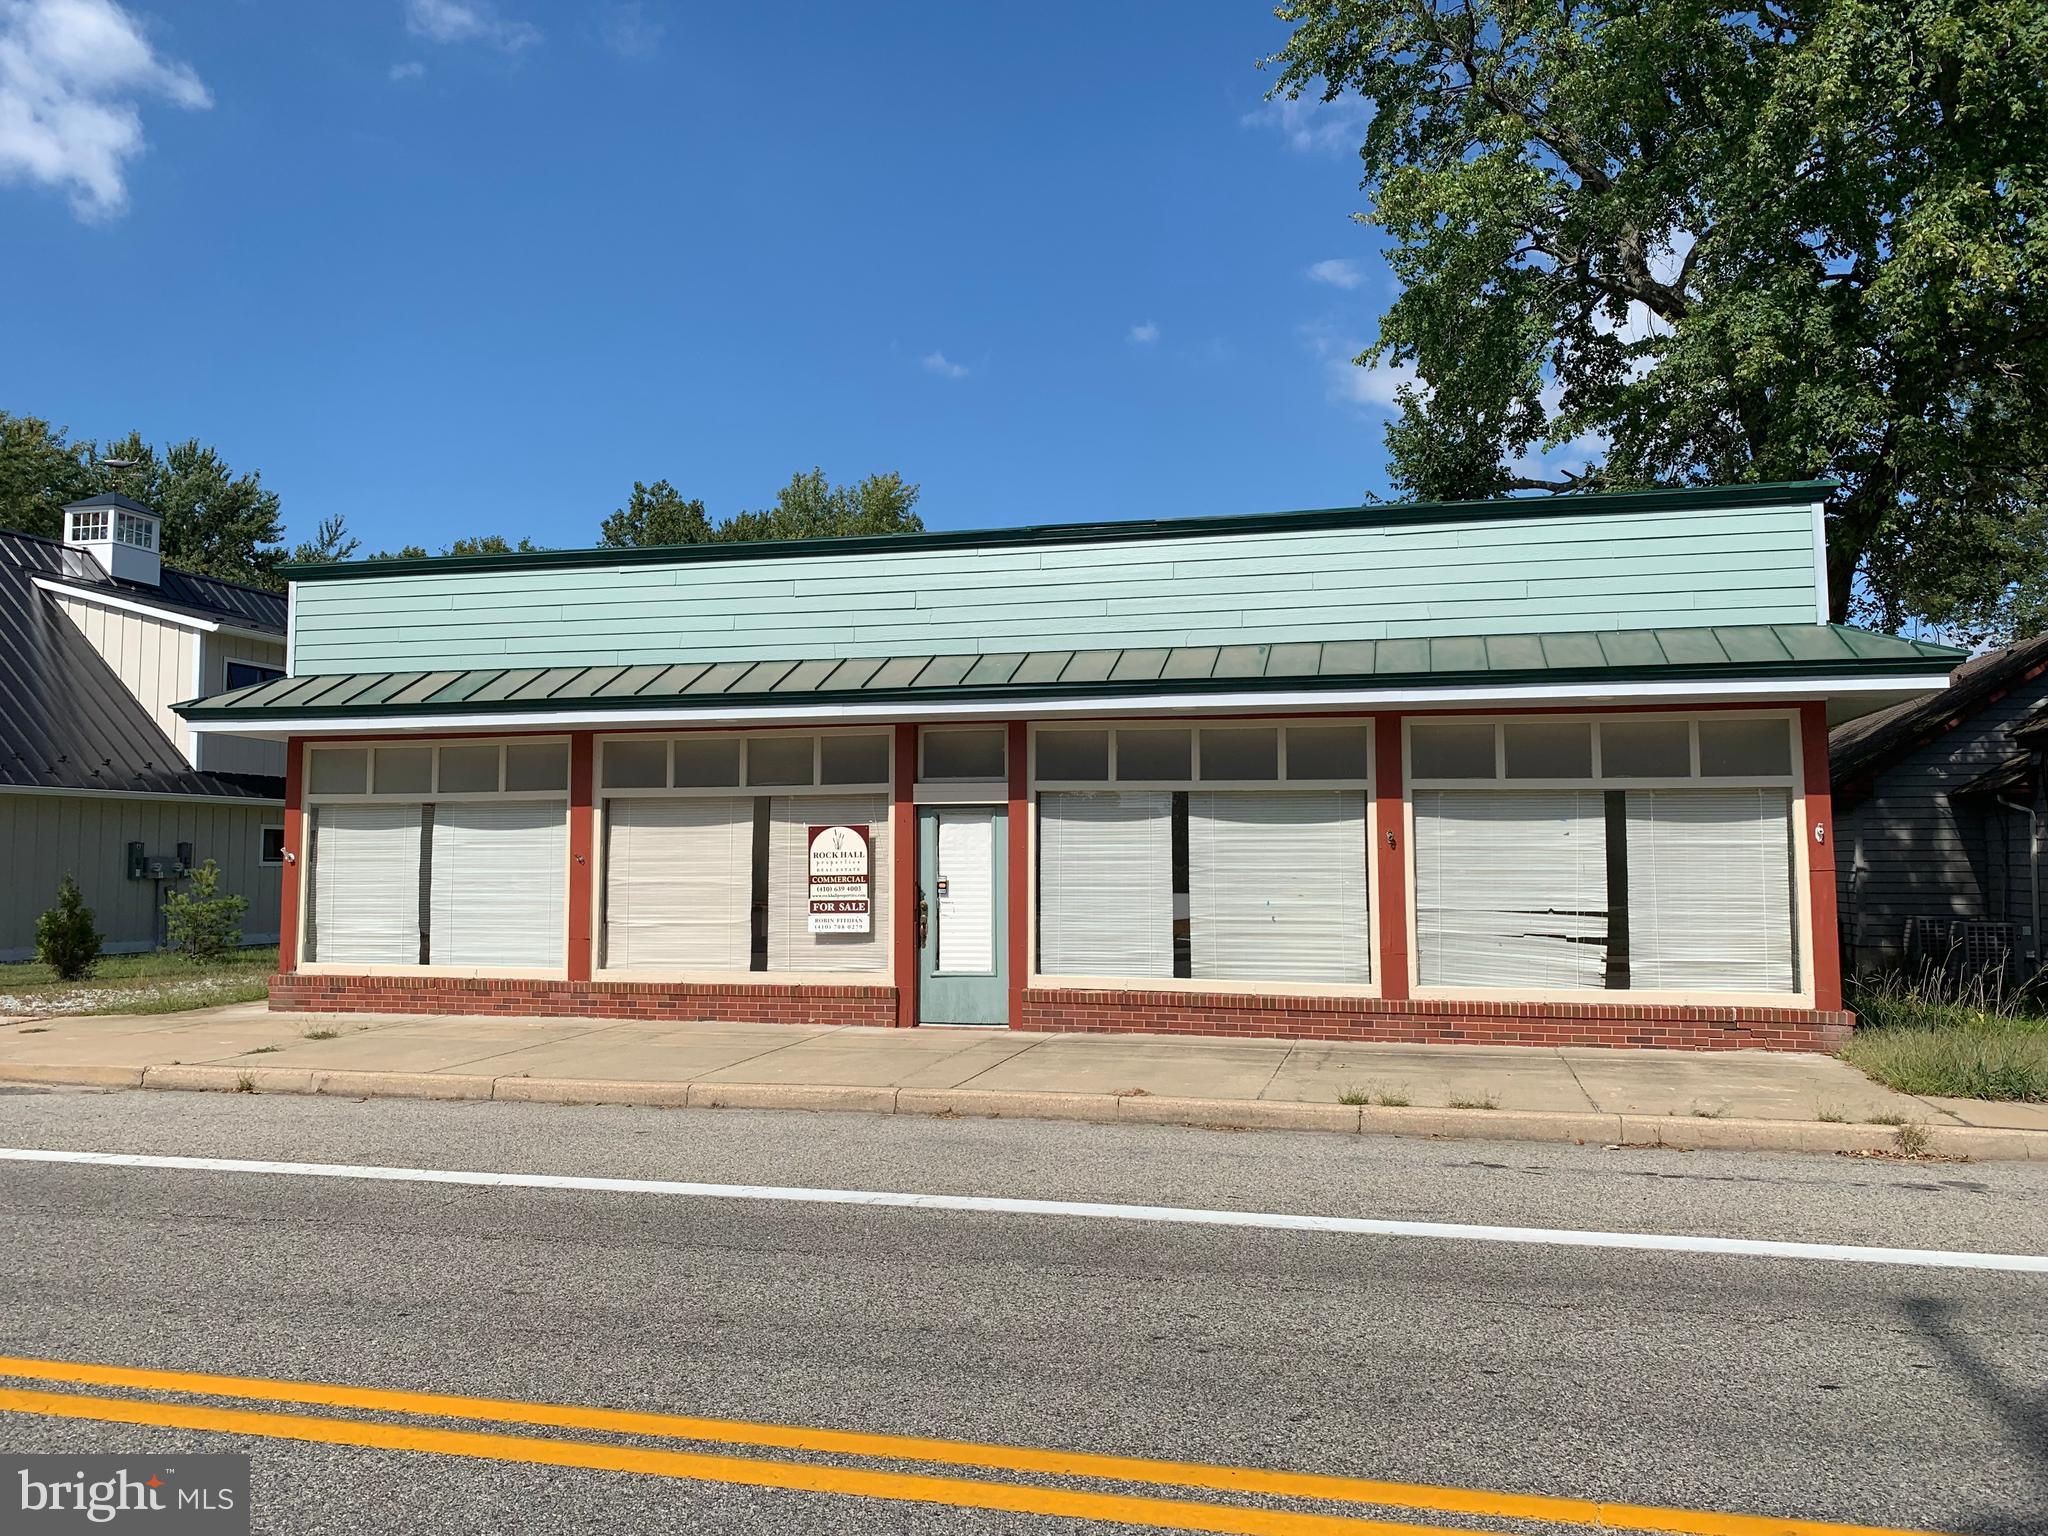 primary photo for 21260 ROCK HALL AVENUE, ROCK HALL, MD 21661, US